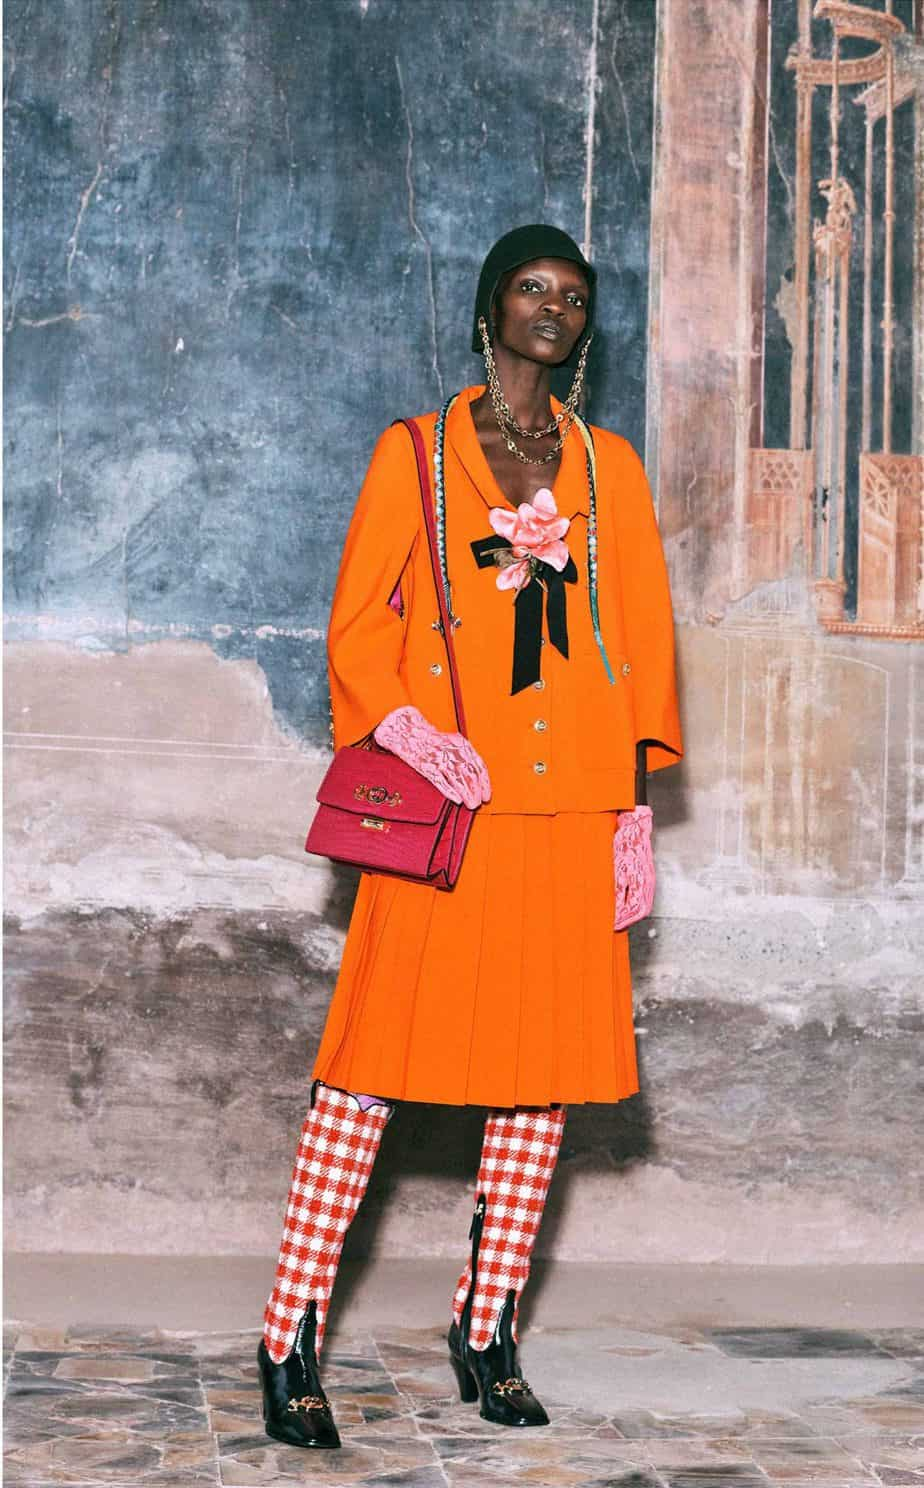 GUCCI, FALL 2019. WOMEN'S FASHION, Photographer Harmony Korine, Art Director, Christopher Simmonds - 92